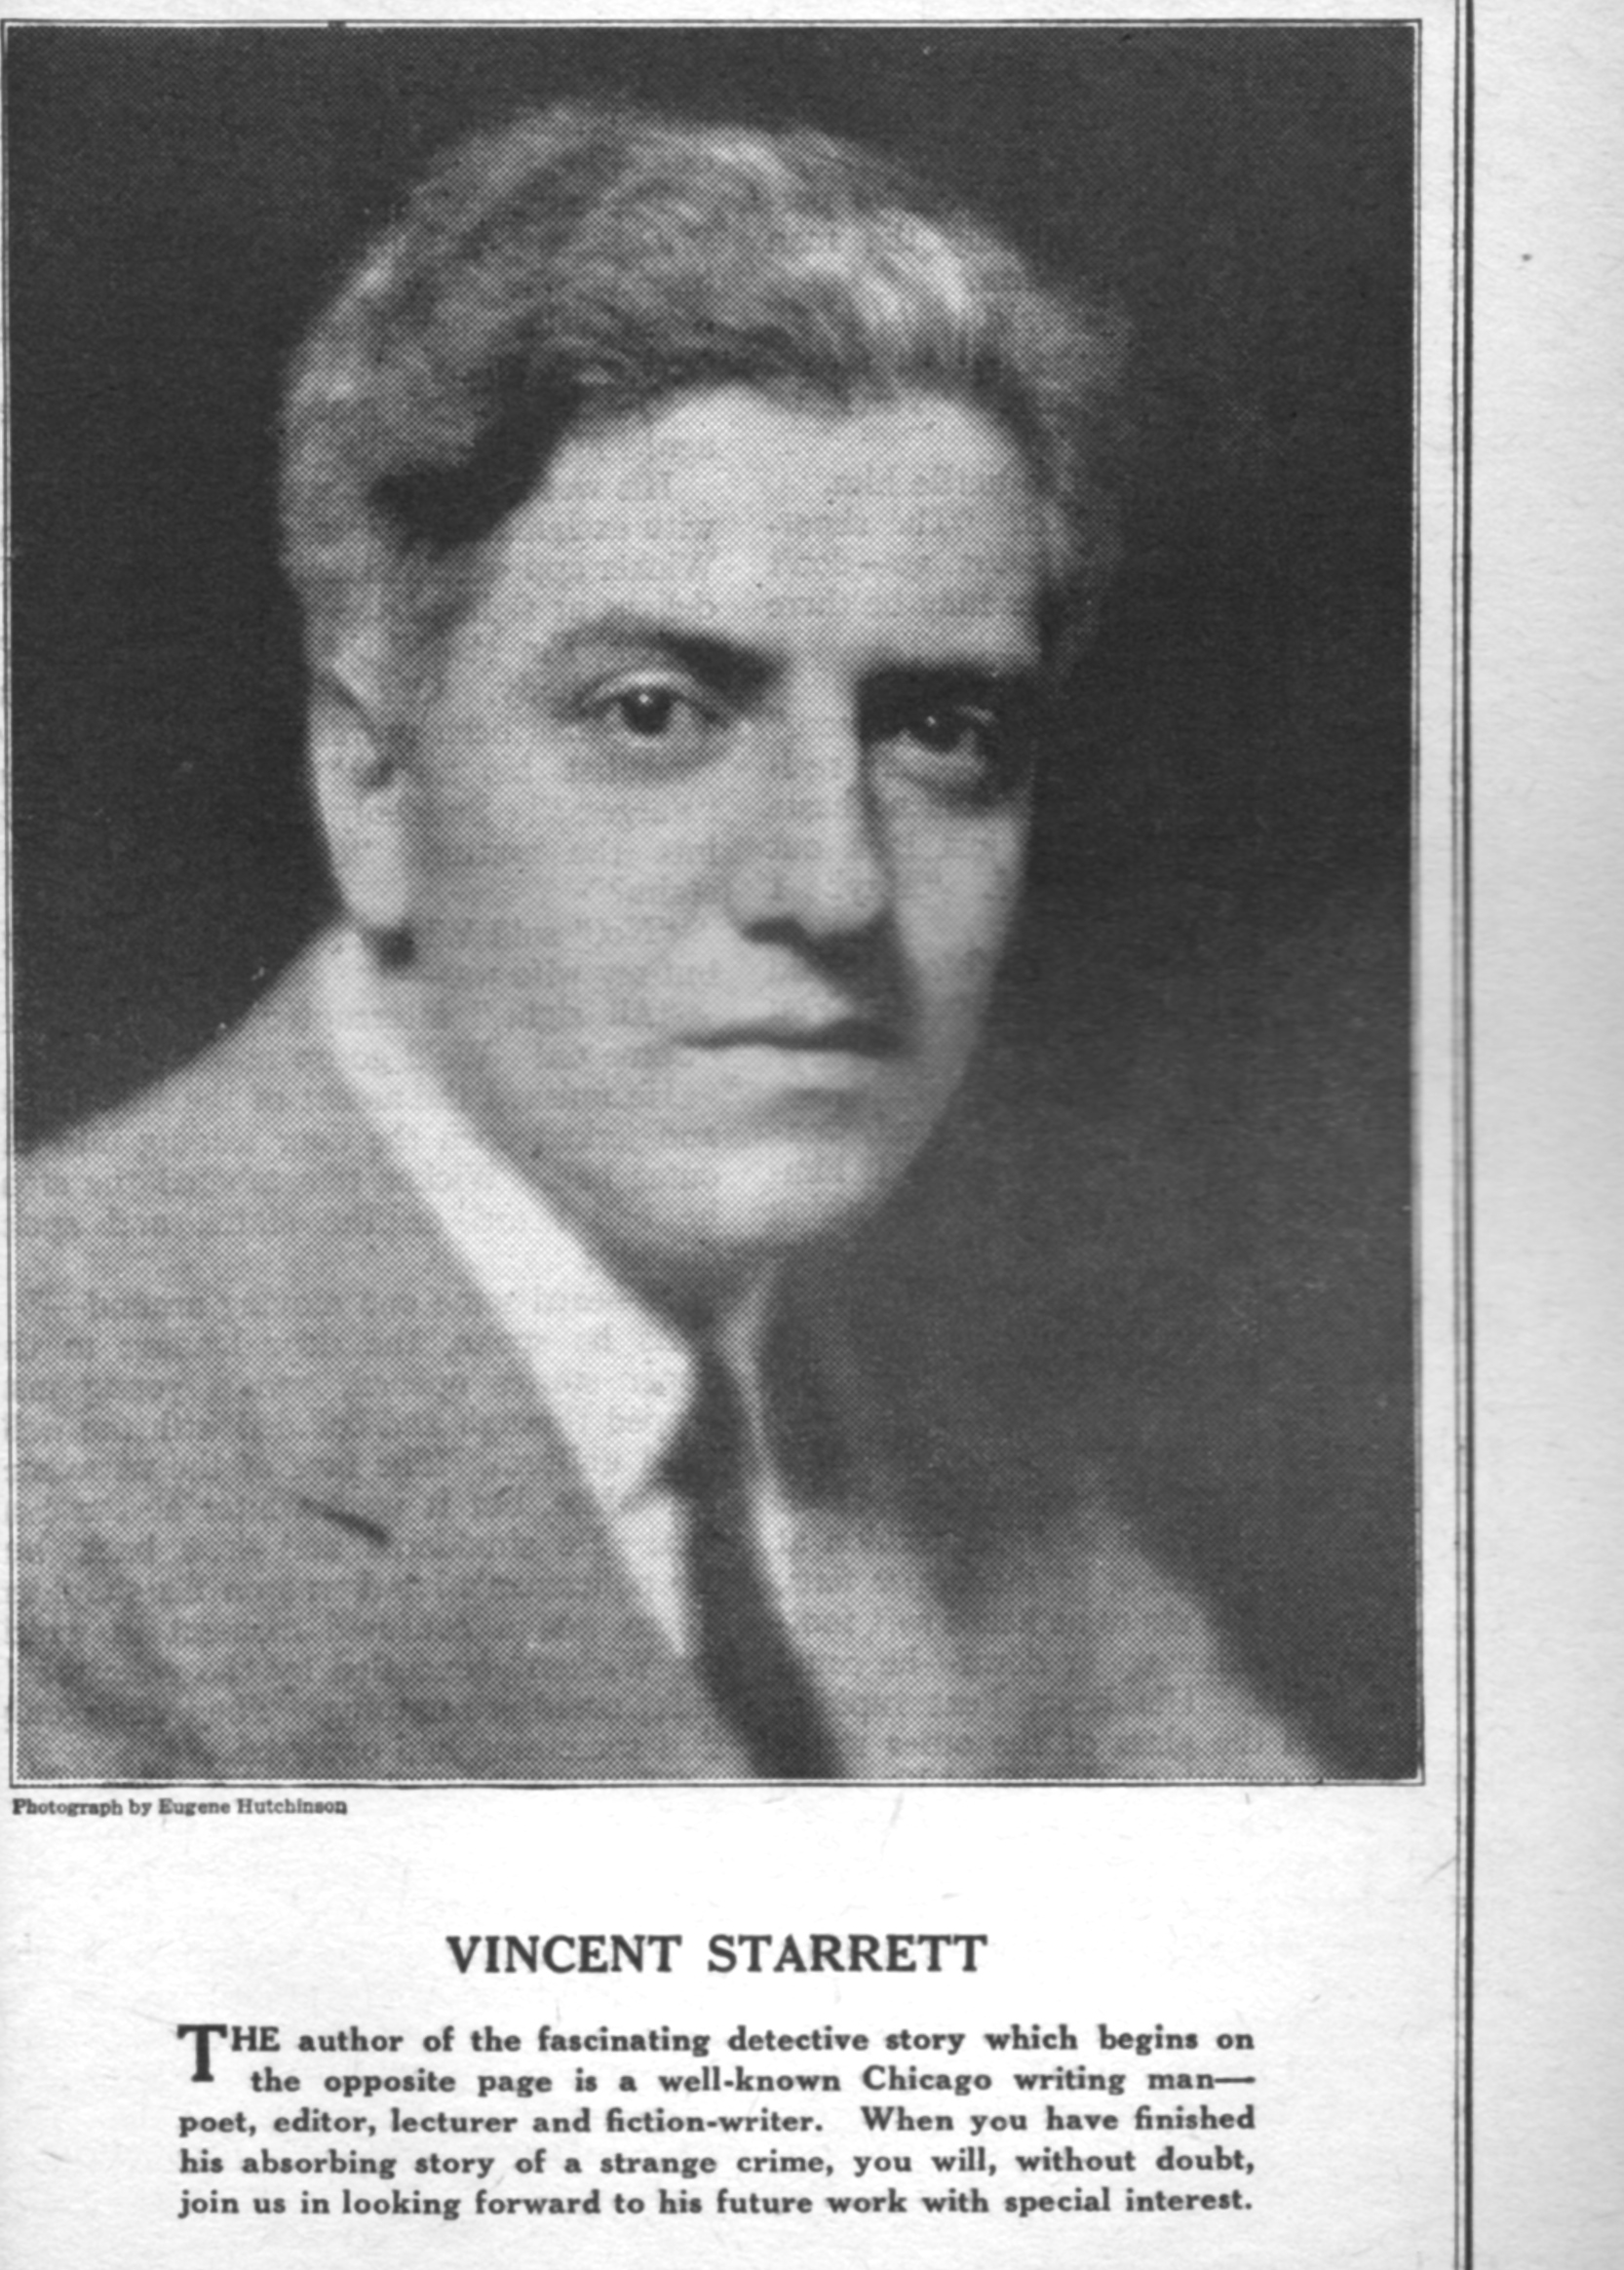 """From the January 1926 issue of The Blue Book Magazine, a pulp that ran Starrett's short story """"The Zulu Assegai."""" The photo was taken by Eugene Hutchinson, who also shot the profile image of Starrett that was used for Oppenheim's clothing catalog and is shown on this page. The image quality is not great, but the pulp is printed on very poor paper."""